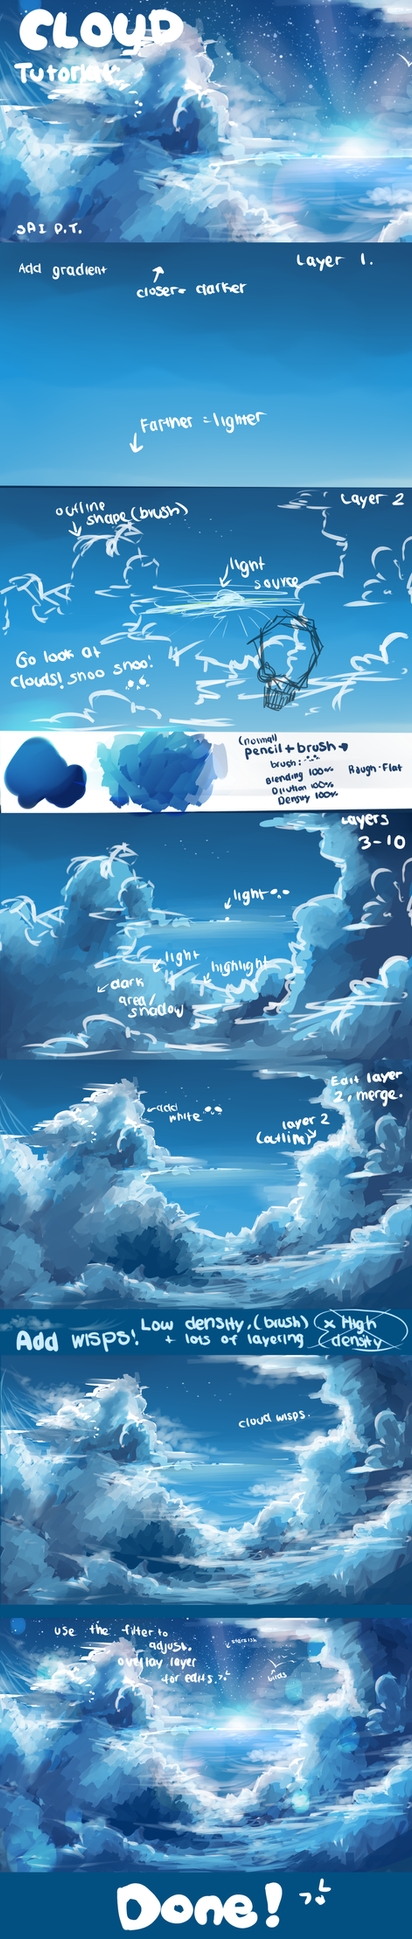 Cloud tutorial by AquaGalaxy